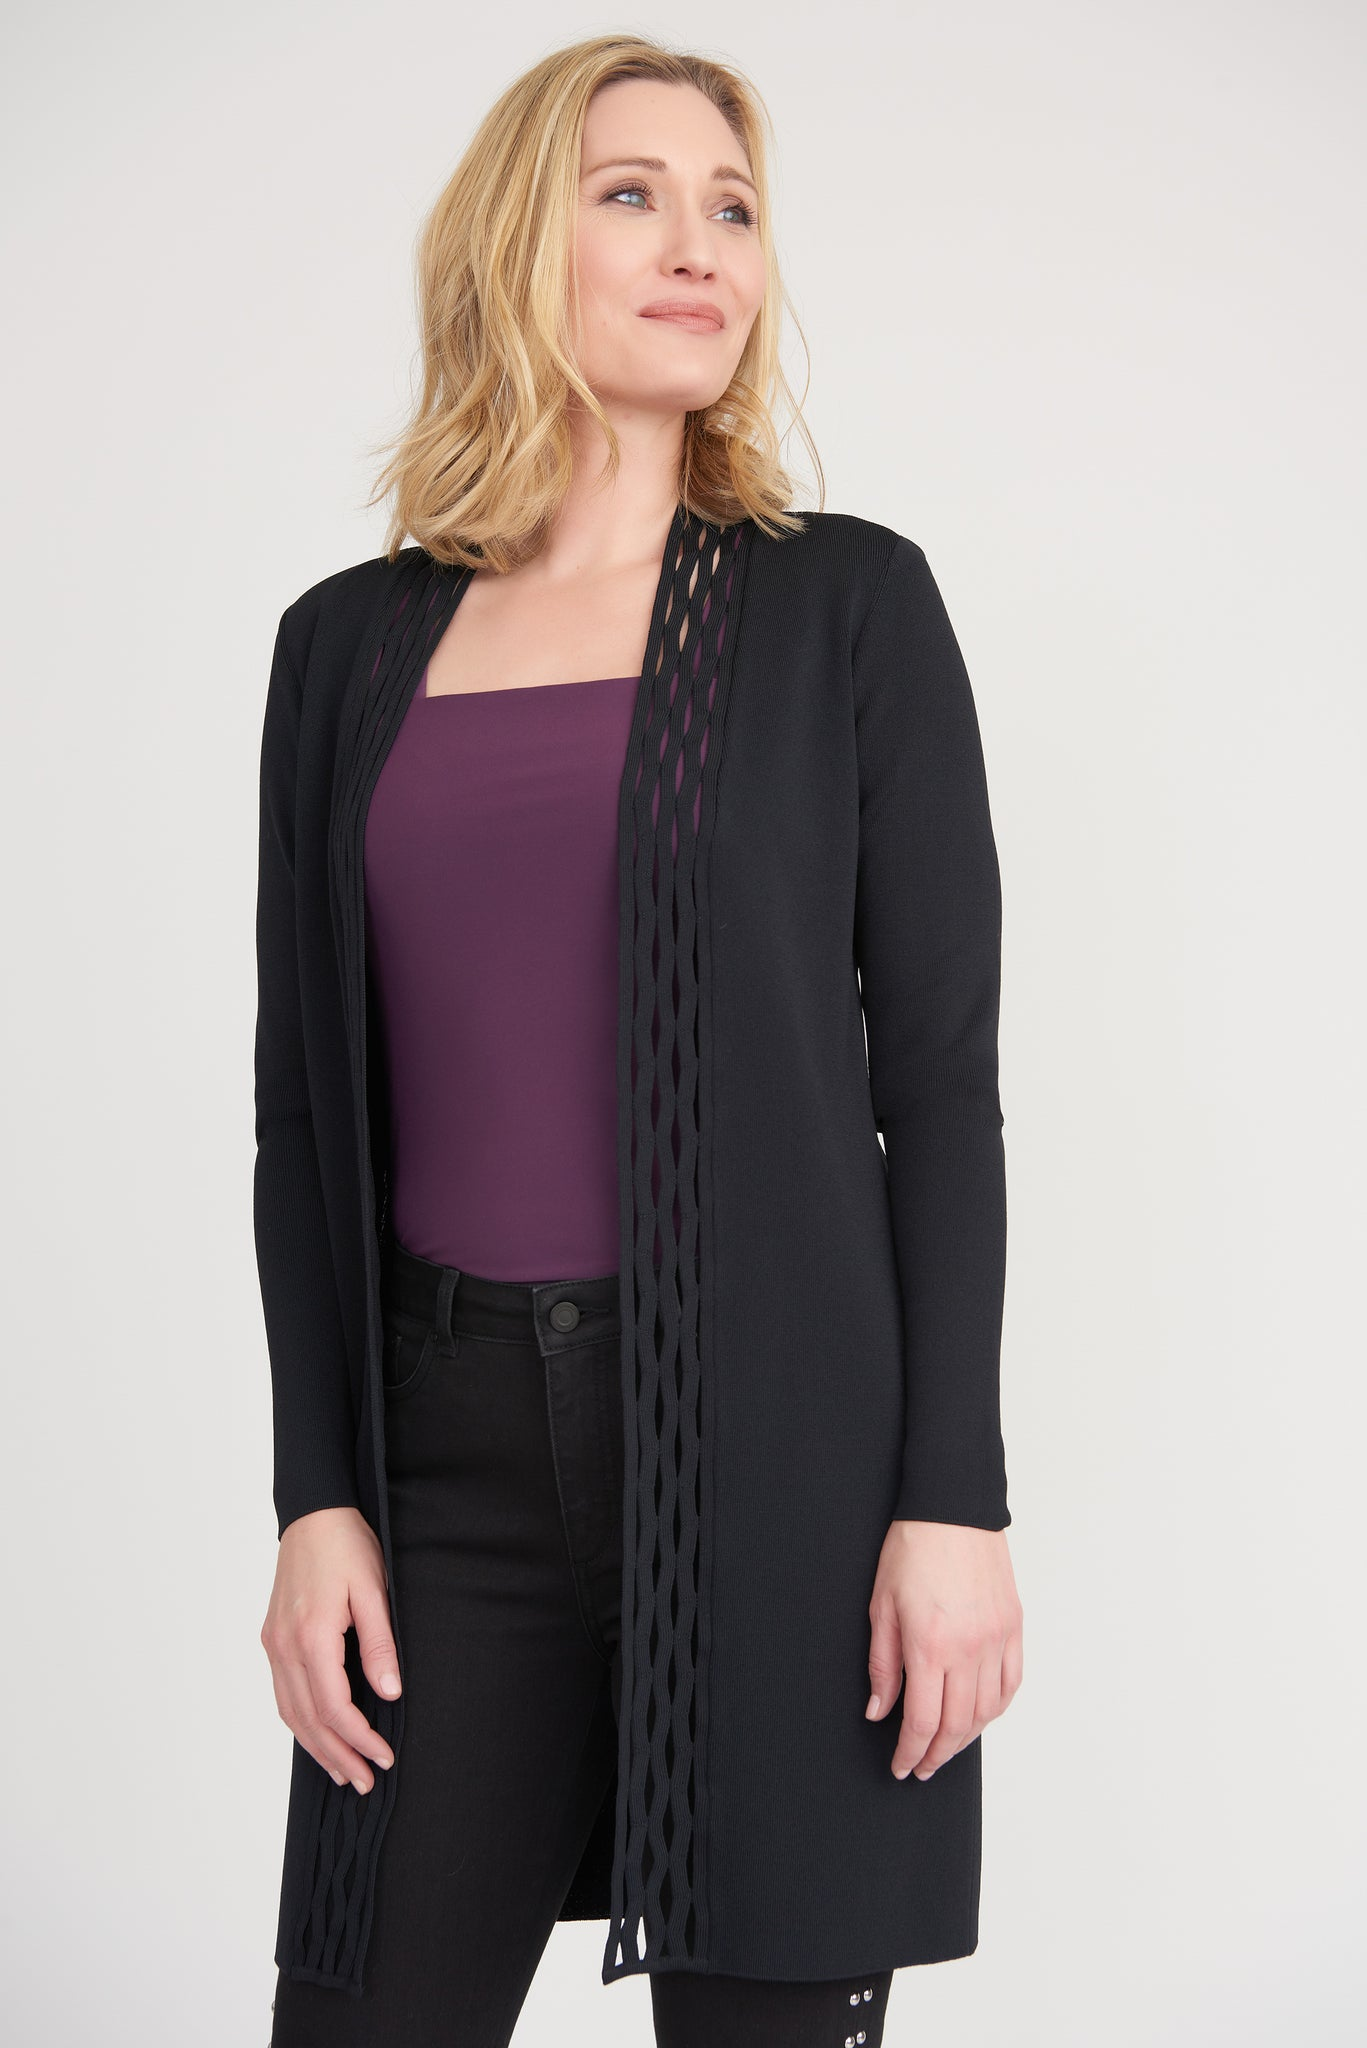 JOSEPH RIBKOFF LADIES LS BLACK CARDIGAN